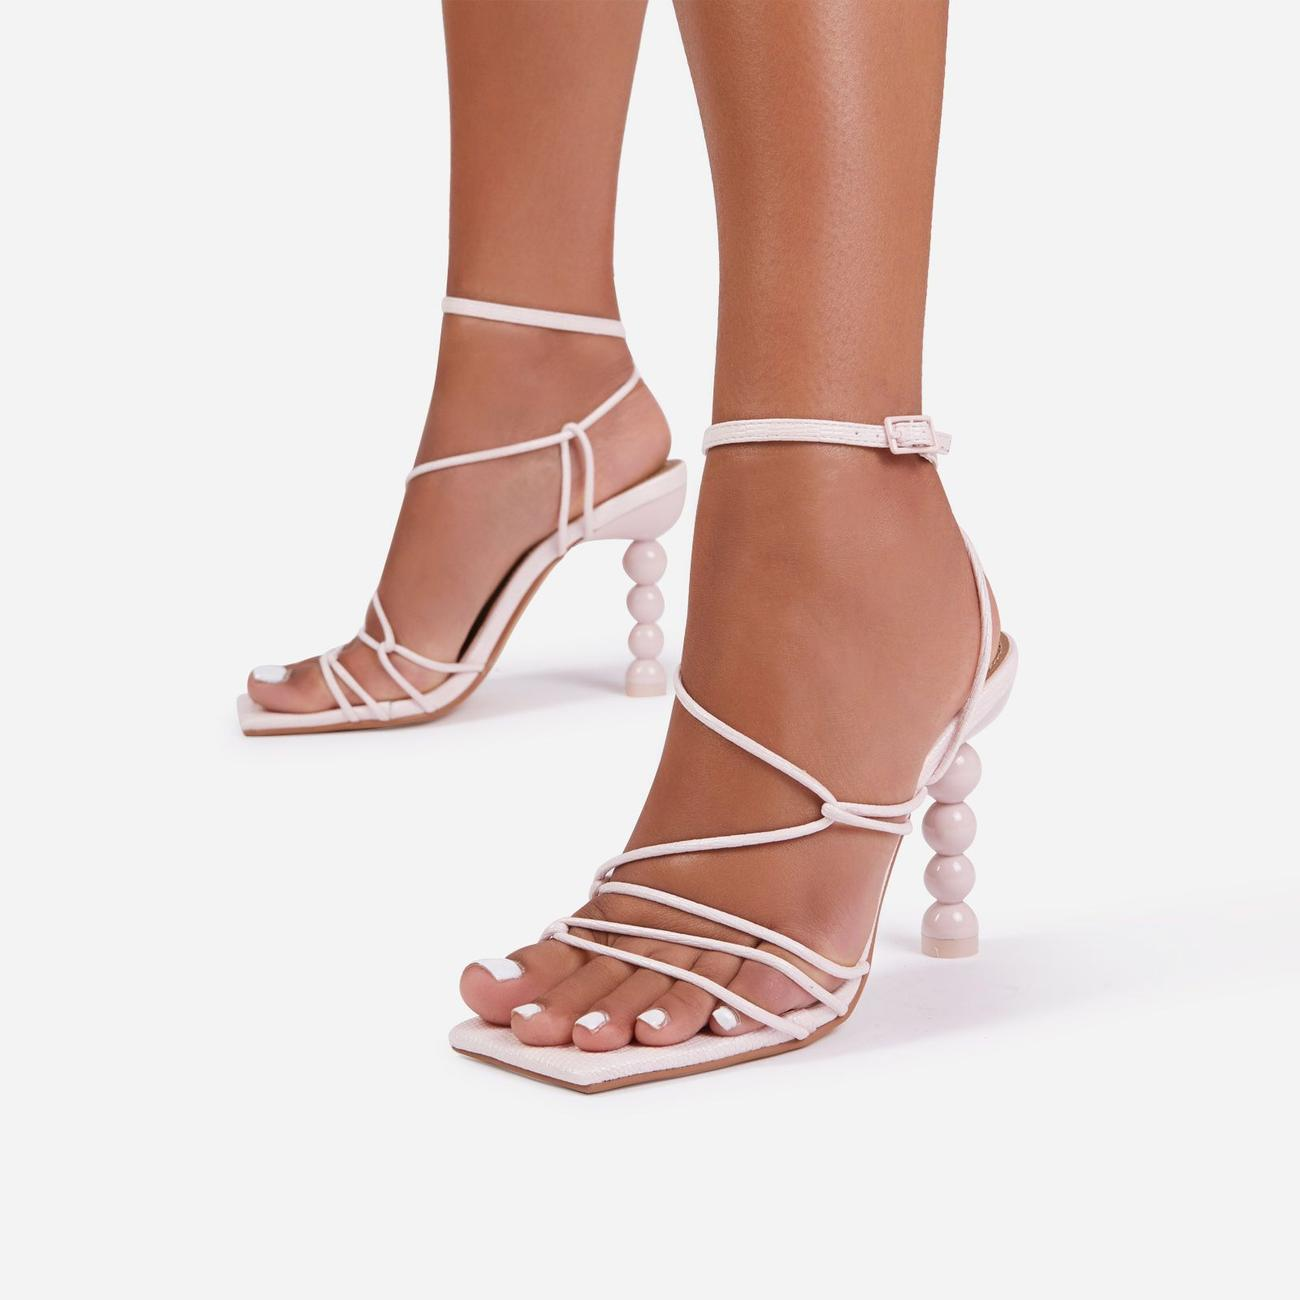 Mulberry Strappy Square Toe Sculptured Heel In Pink Faux Leather Image 1